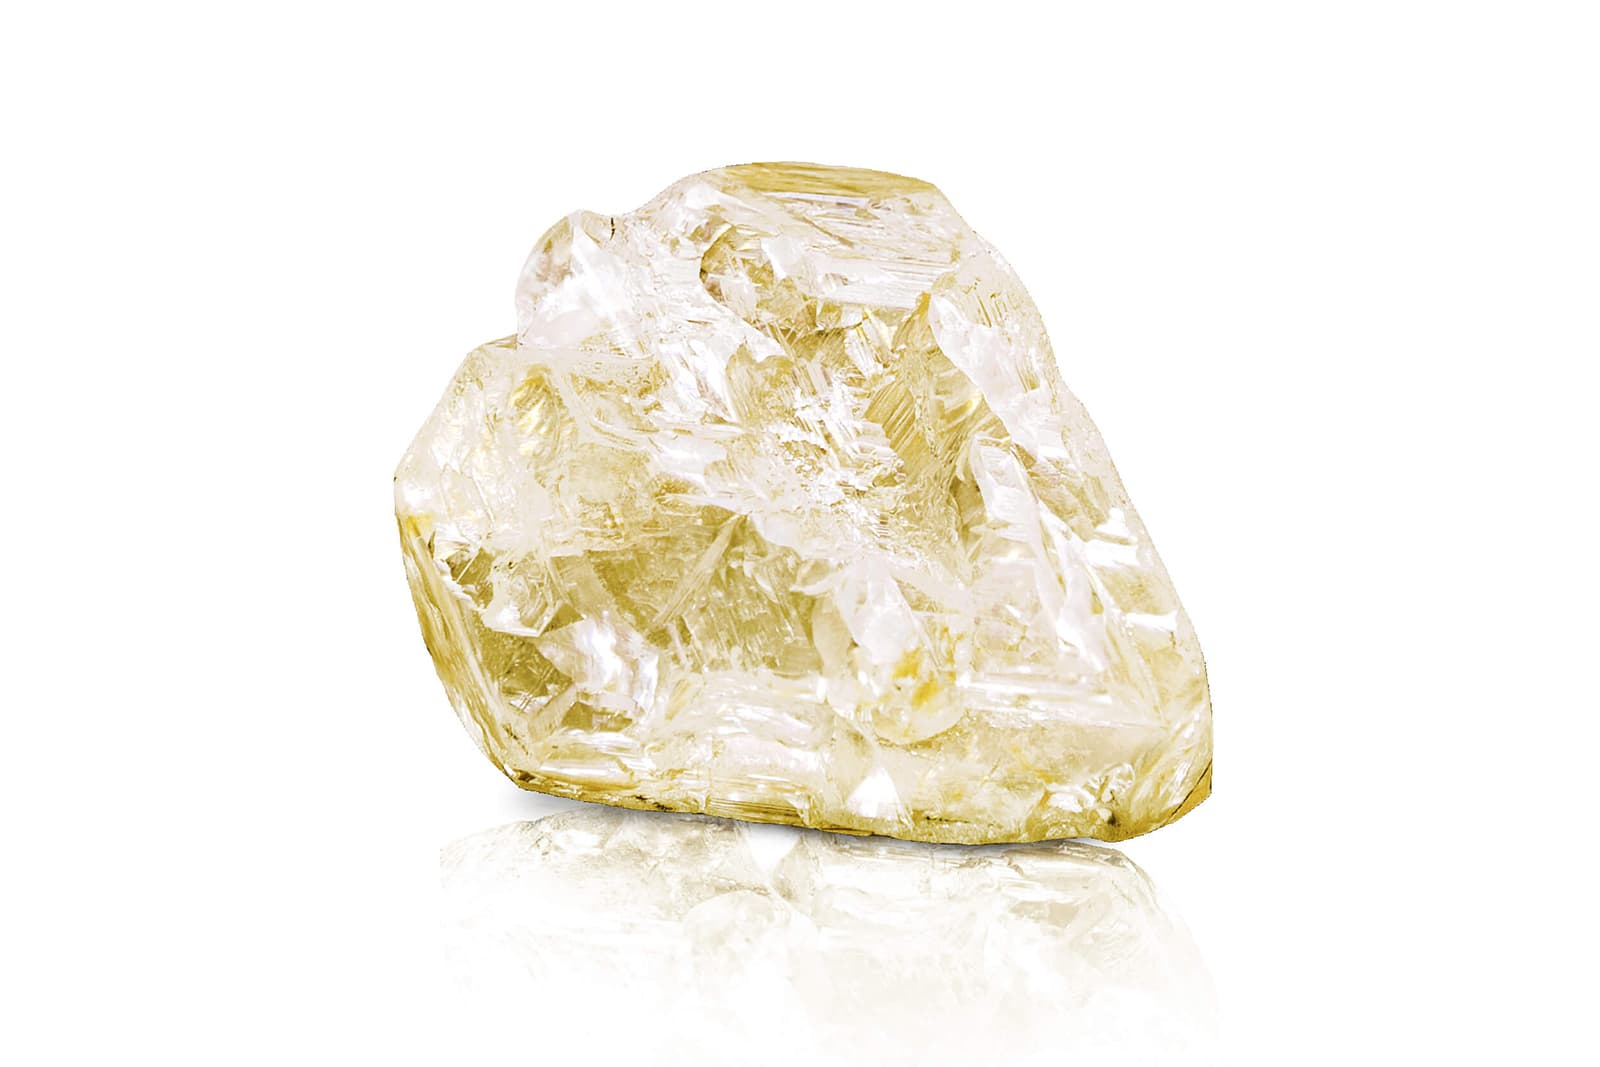 The 709-carat Peace Diamond was discovered by a team of artisanal diggers in Sierra Leone